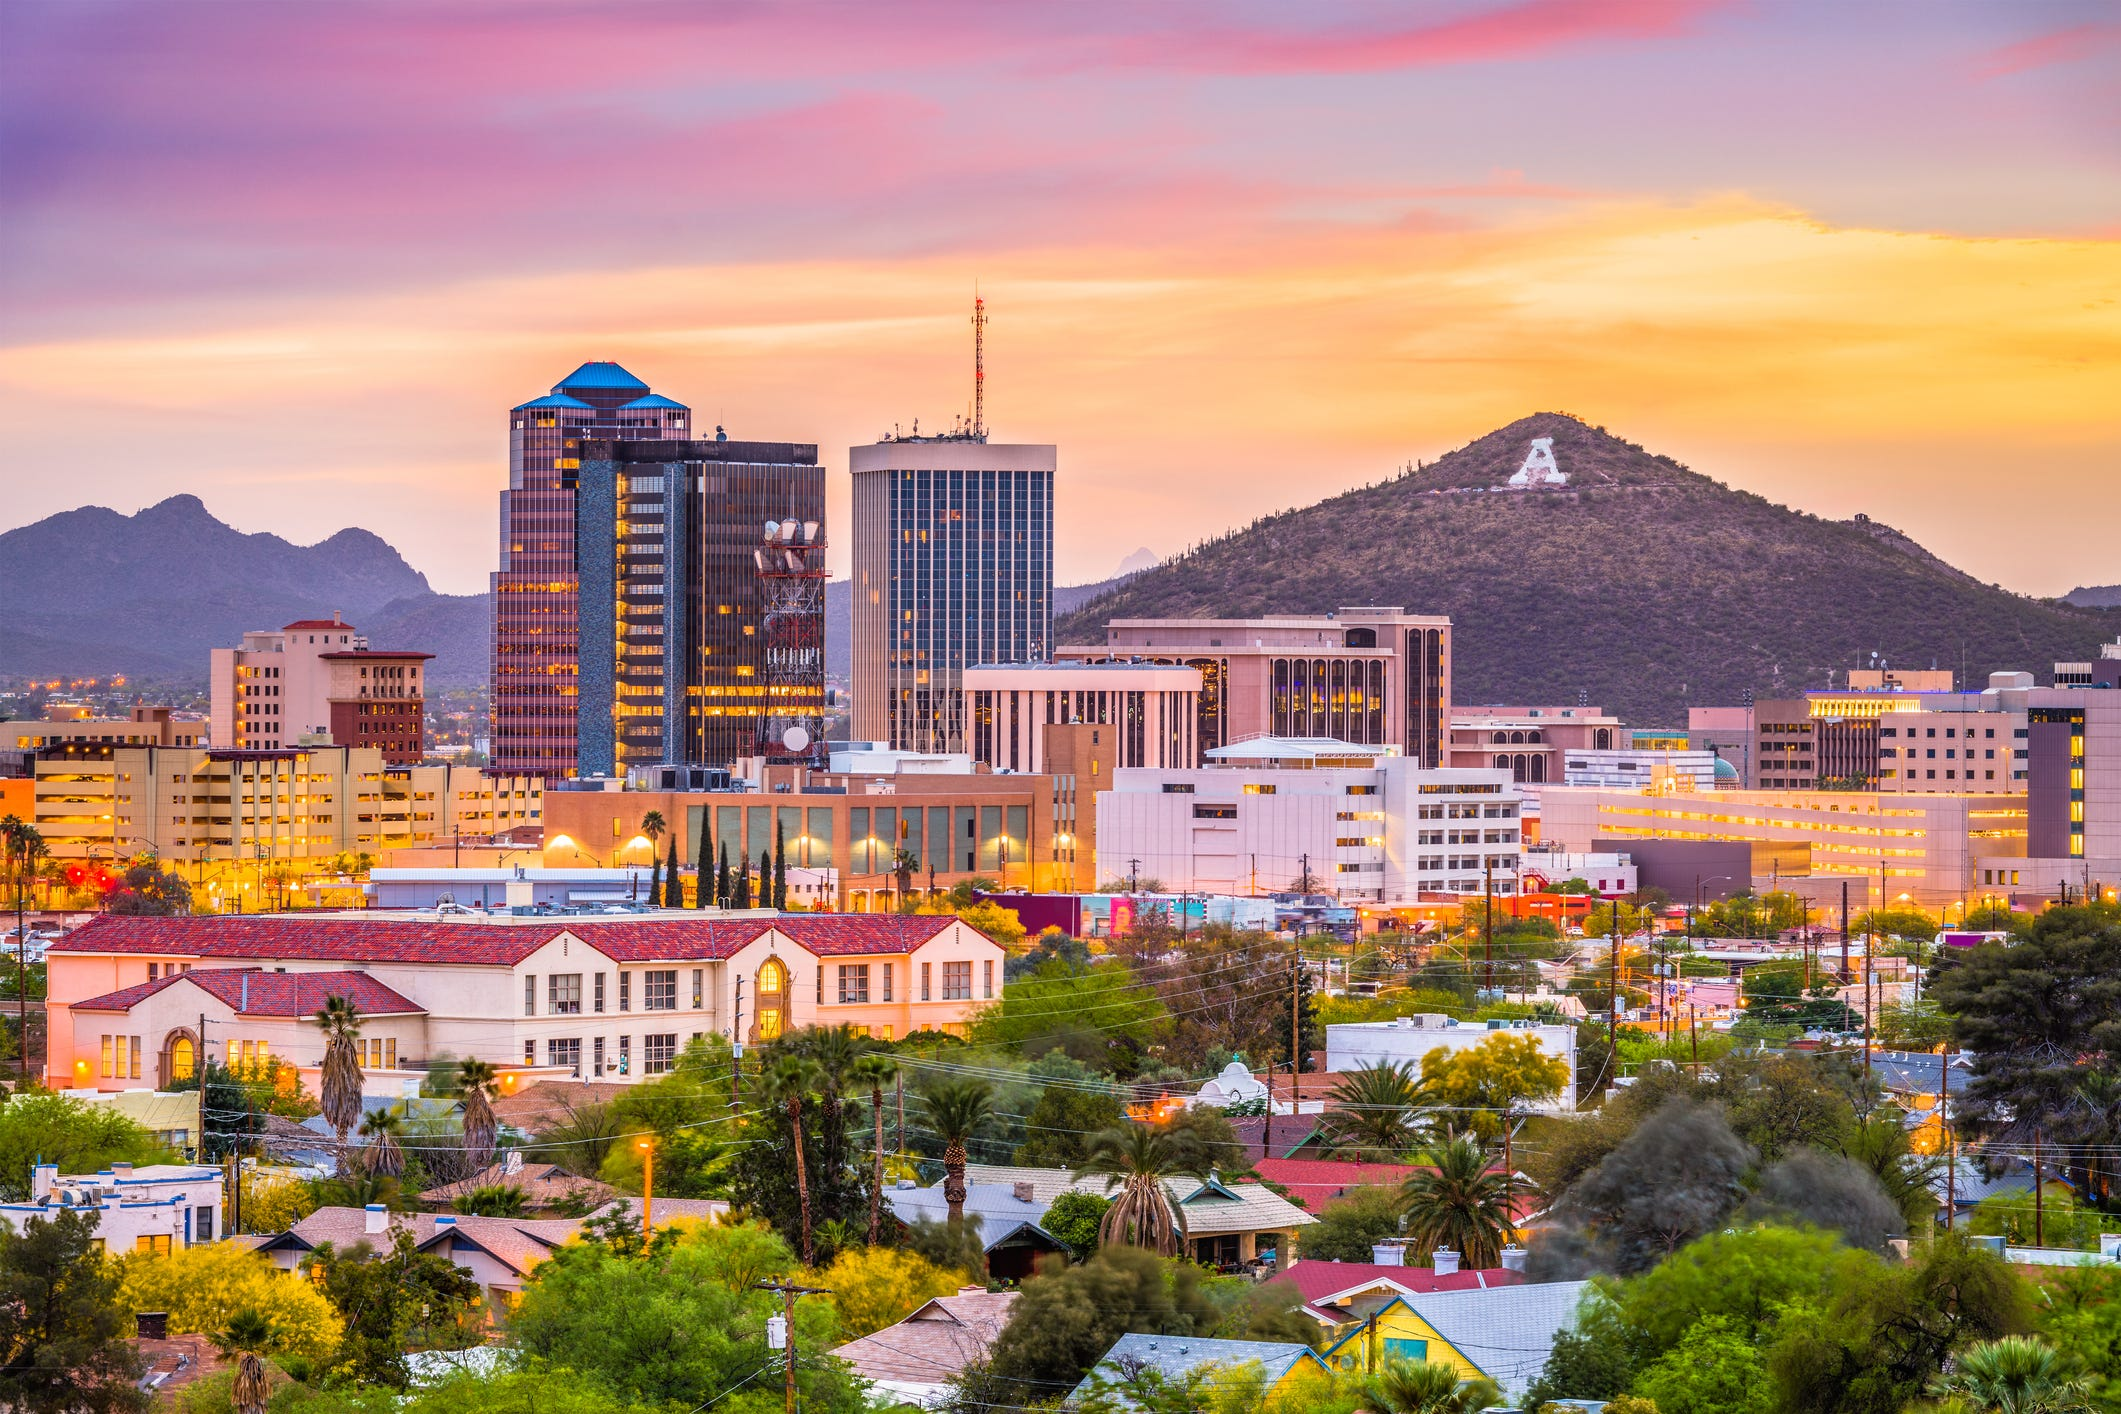 The top 25 cities to take a staycation, according to WalletHub